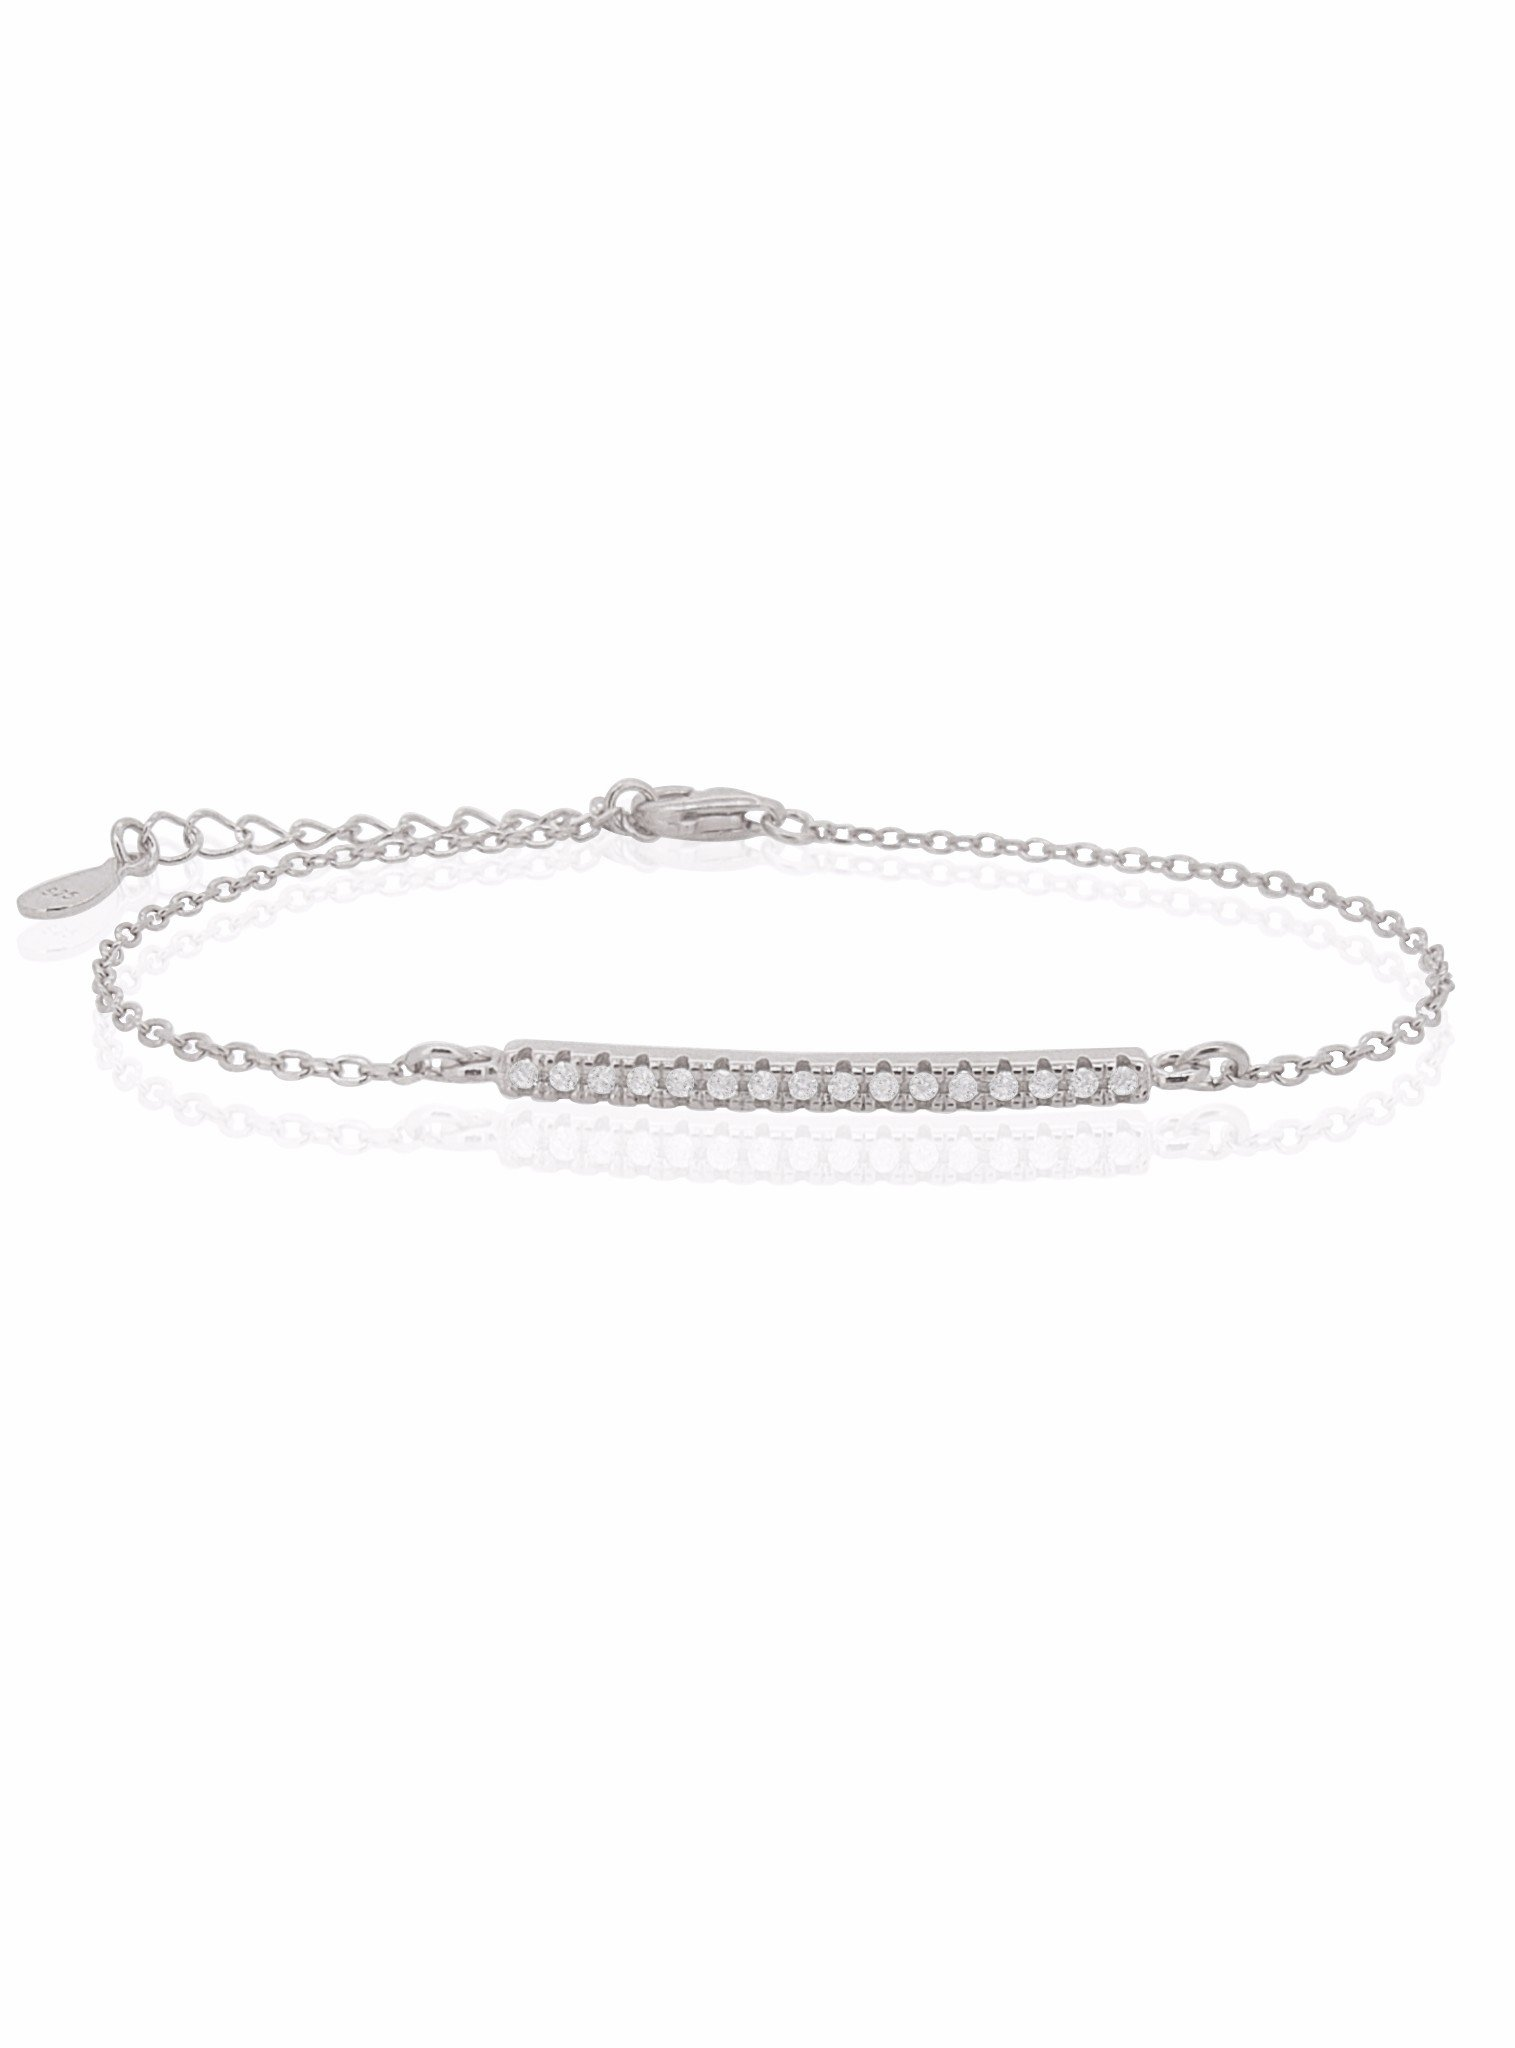 Emilia CZ Pave Set Bar Bracelet in Sterling Silver